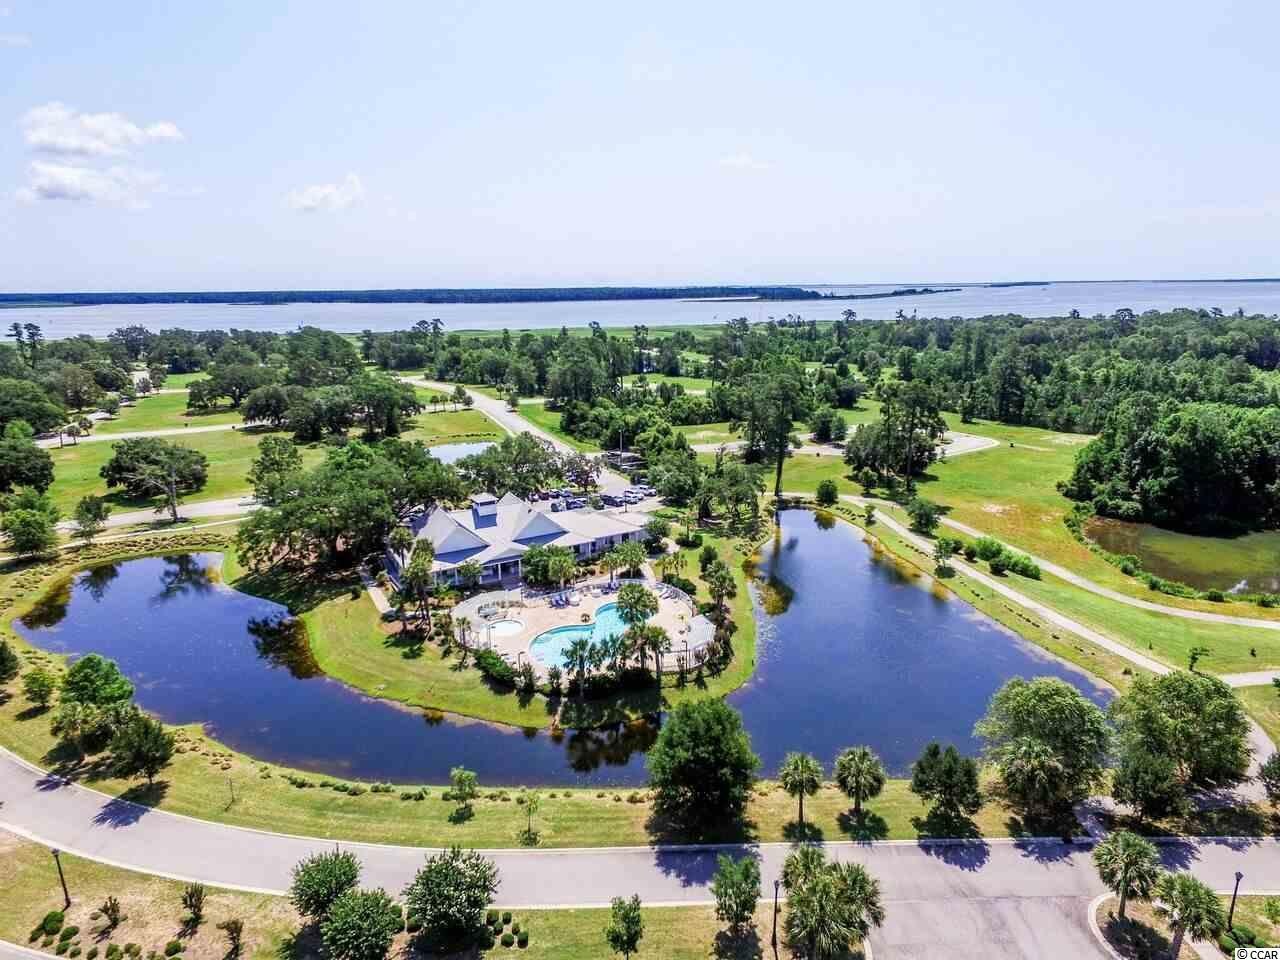 Located in South Island Plantation, a gated community located along Winyah Bay and the Intracoastal Waterway, near Historic Georgetown, SC. Community amenities include a pool, kiddie pool and hot tub. There is also a 5000 sq ft club house with an equipped fitness center, a bar and a full kitchen. Walking trails wind throughout the community with gazebos for periodic resting.  A fishing/crabbin' gazebo is  now complete. A secured RV/ Boat storage area is available for property owners. Beautiful ponds for fishing and huge Oak Trees make this one of the premier communities in the Georgetown area. Natural gas is also available in South Island Plantation. Build your dream home today....